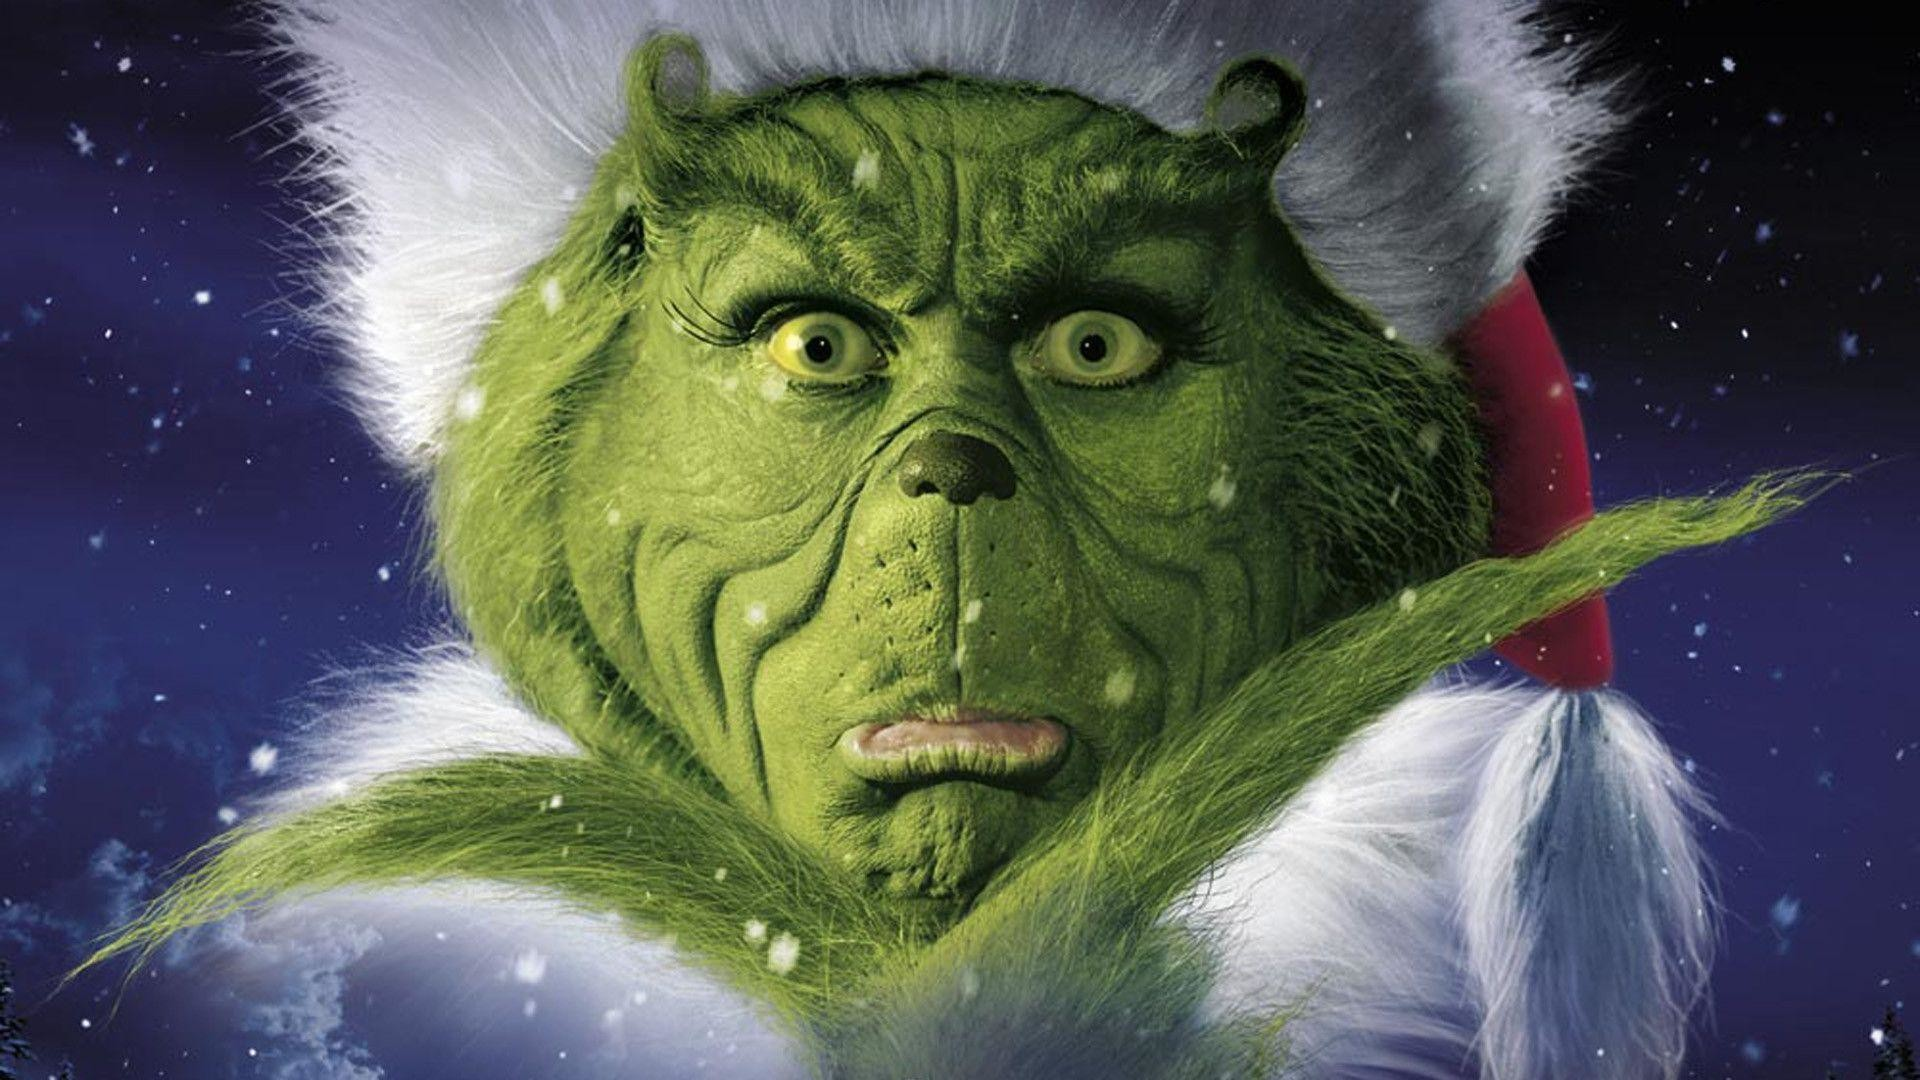 Grinch Wallpaper 64 images 1920x1080